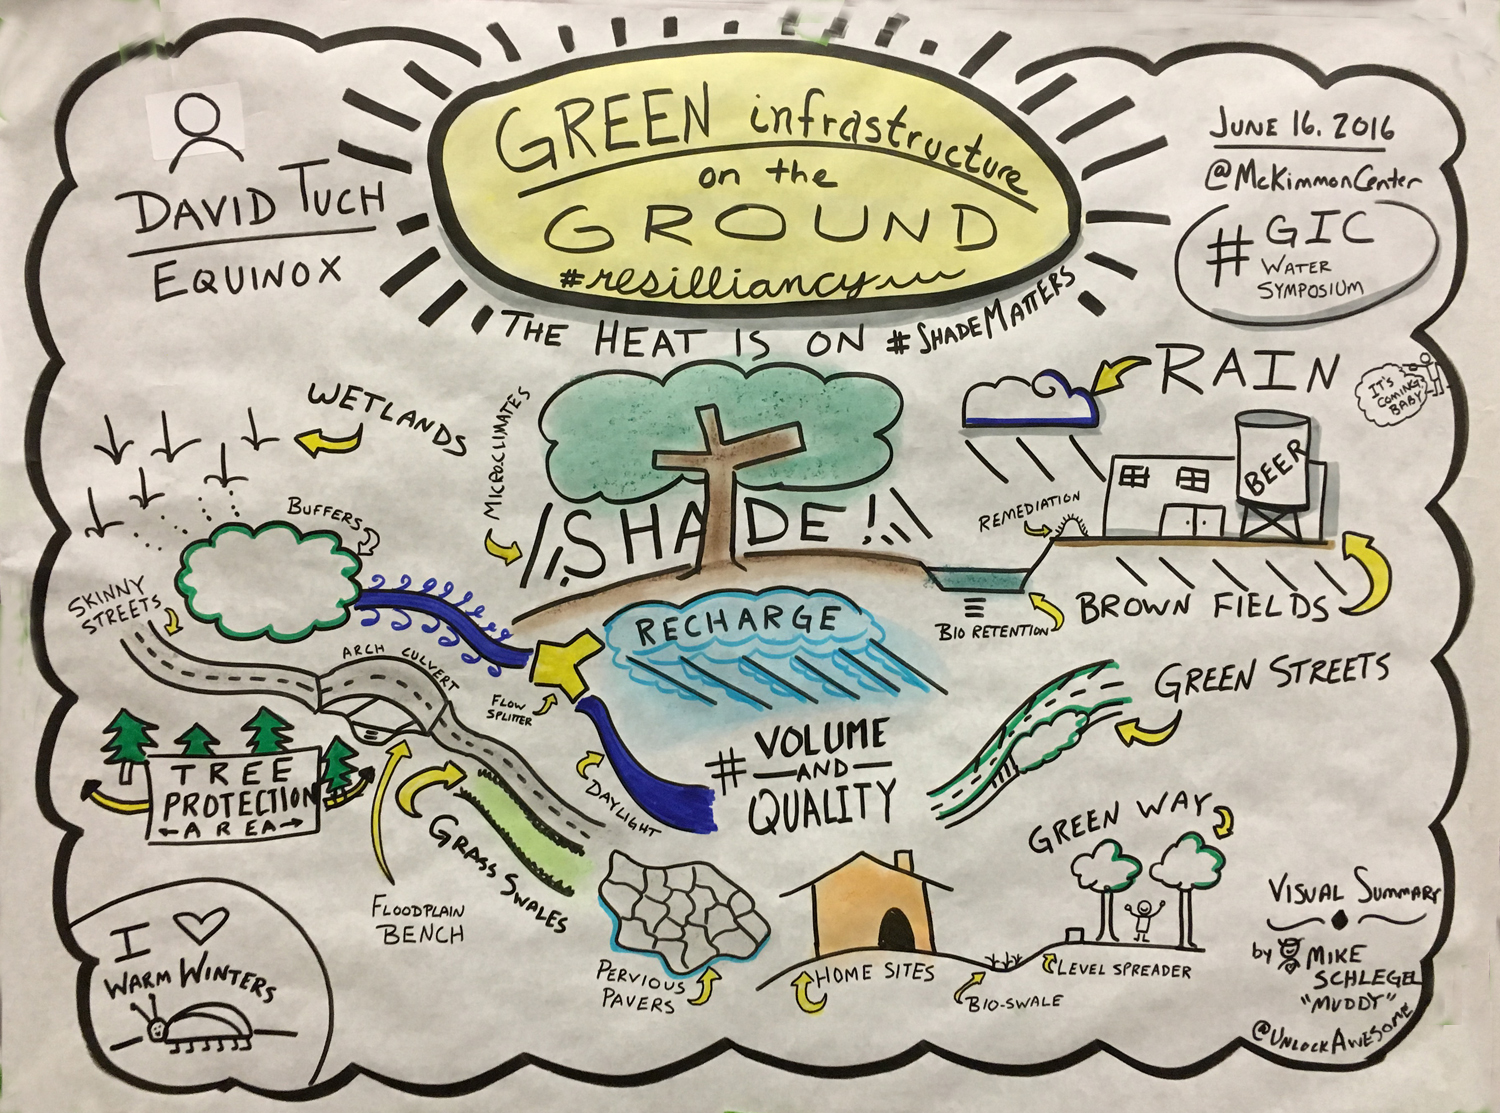 The visual summary of David Tuchs presentation shows the interconnectedness of the natural systems that build resiliency. With more extreme weather events predicted, our communities will need solutions that provide a great range of services. Green infrastructure is a way to make that happen.